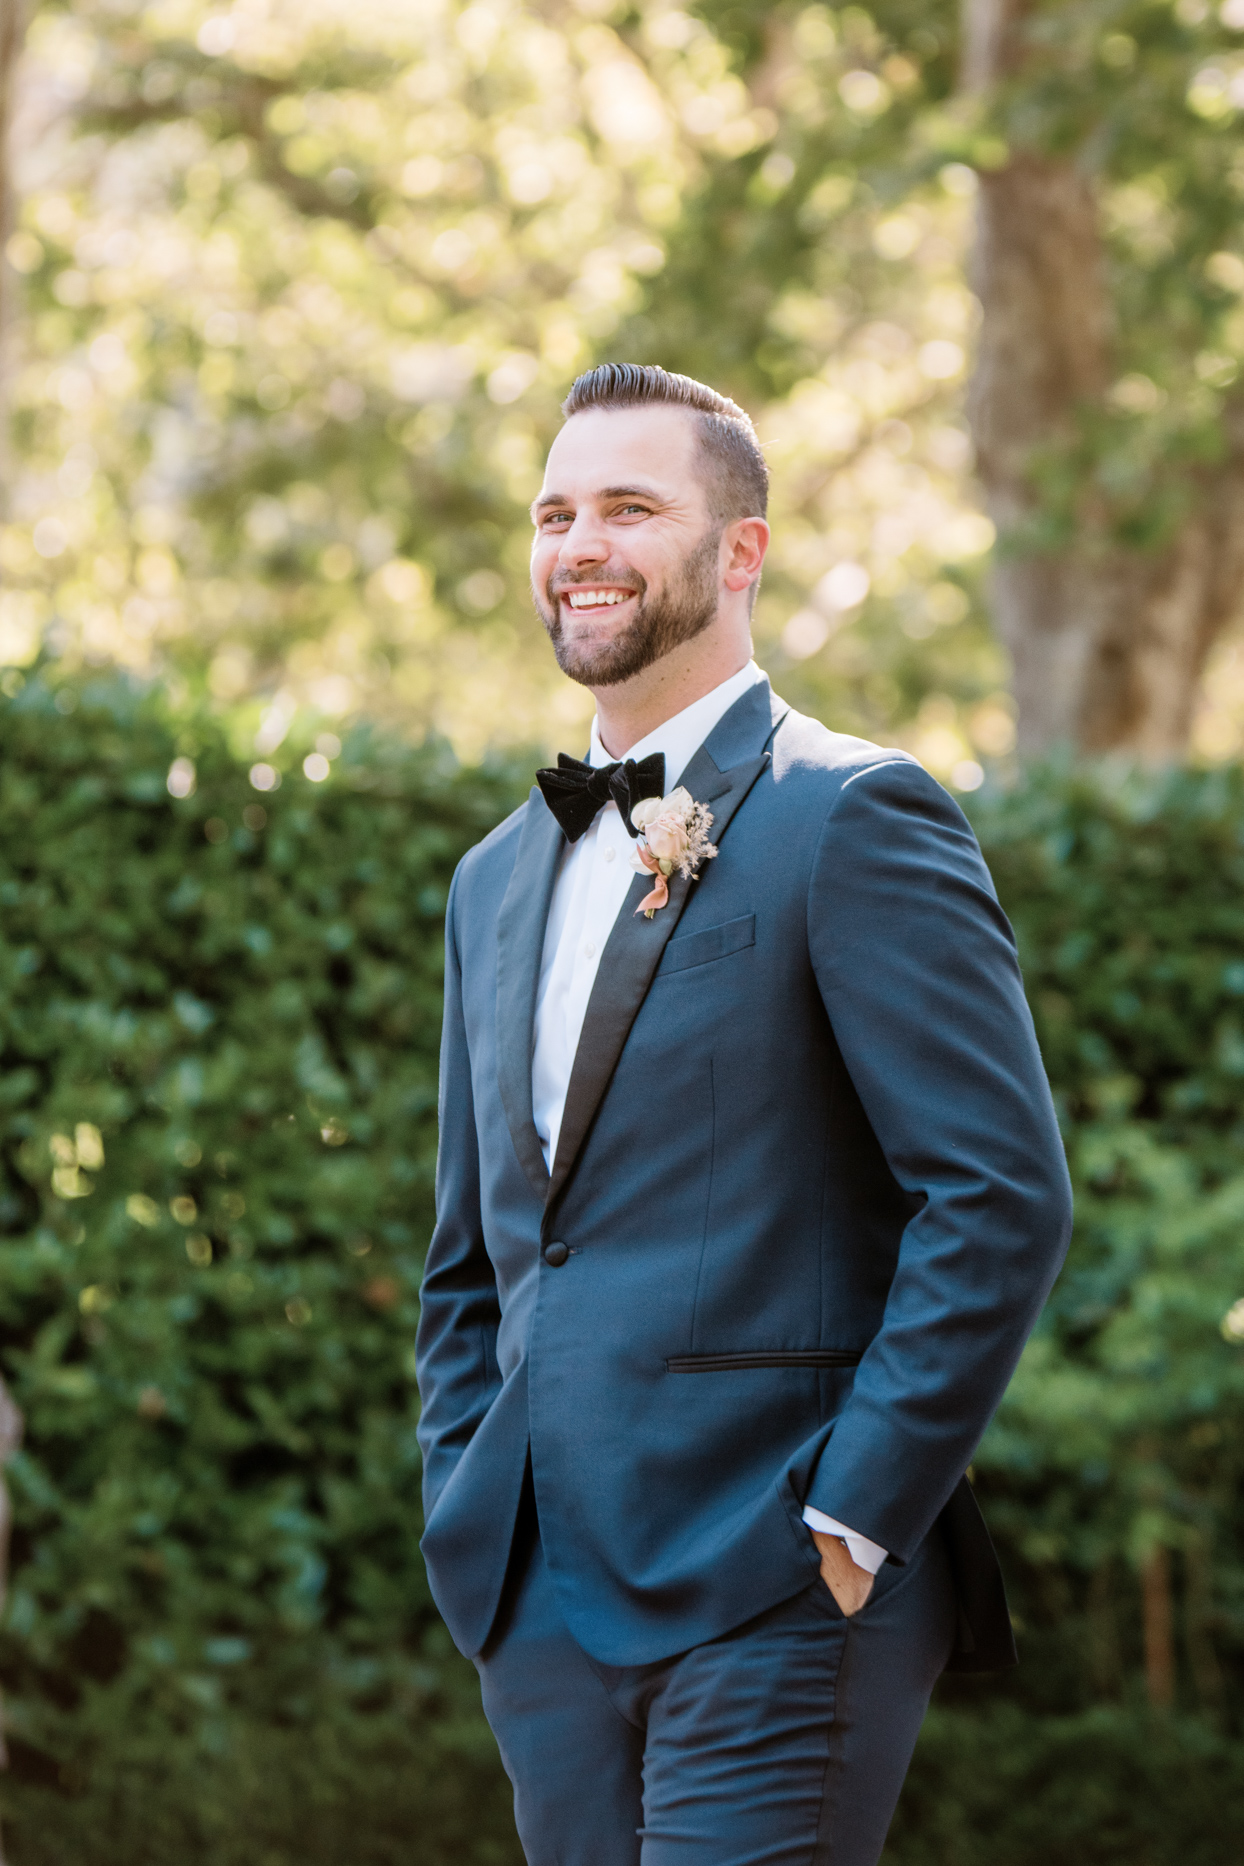 groom in blue suit with pink boutonniere